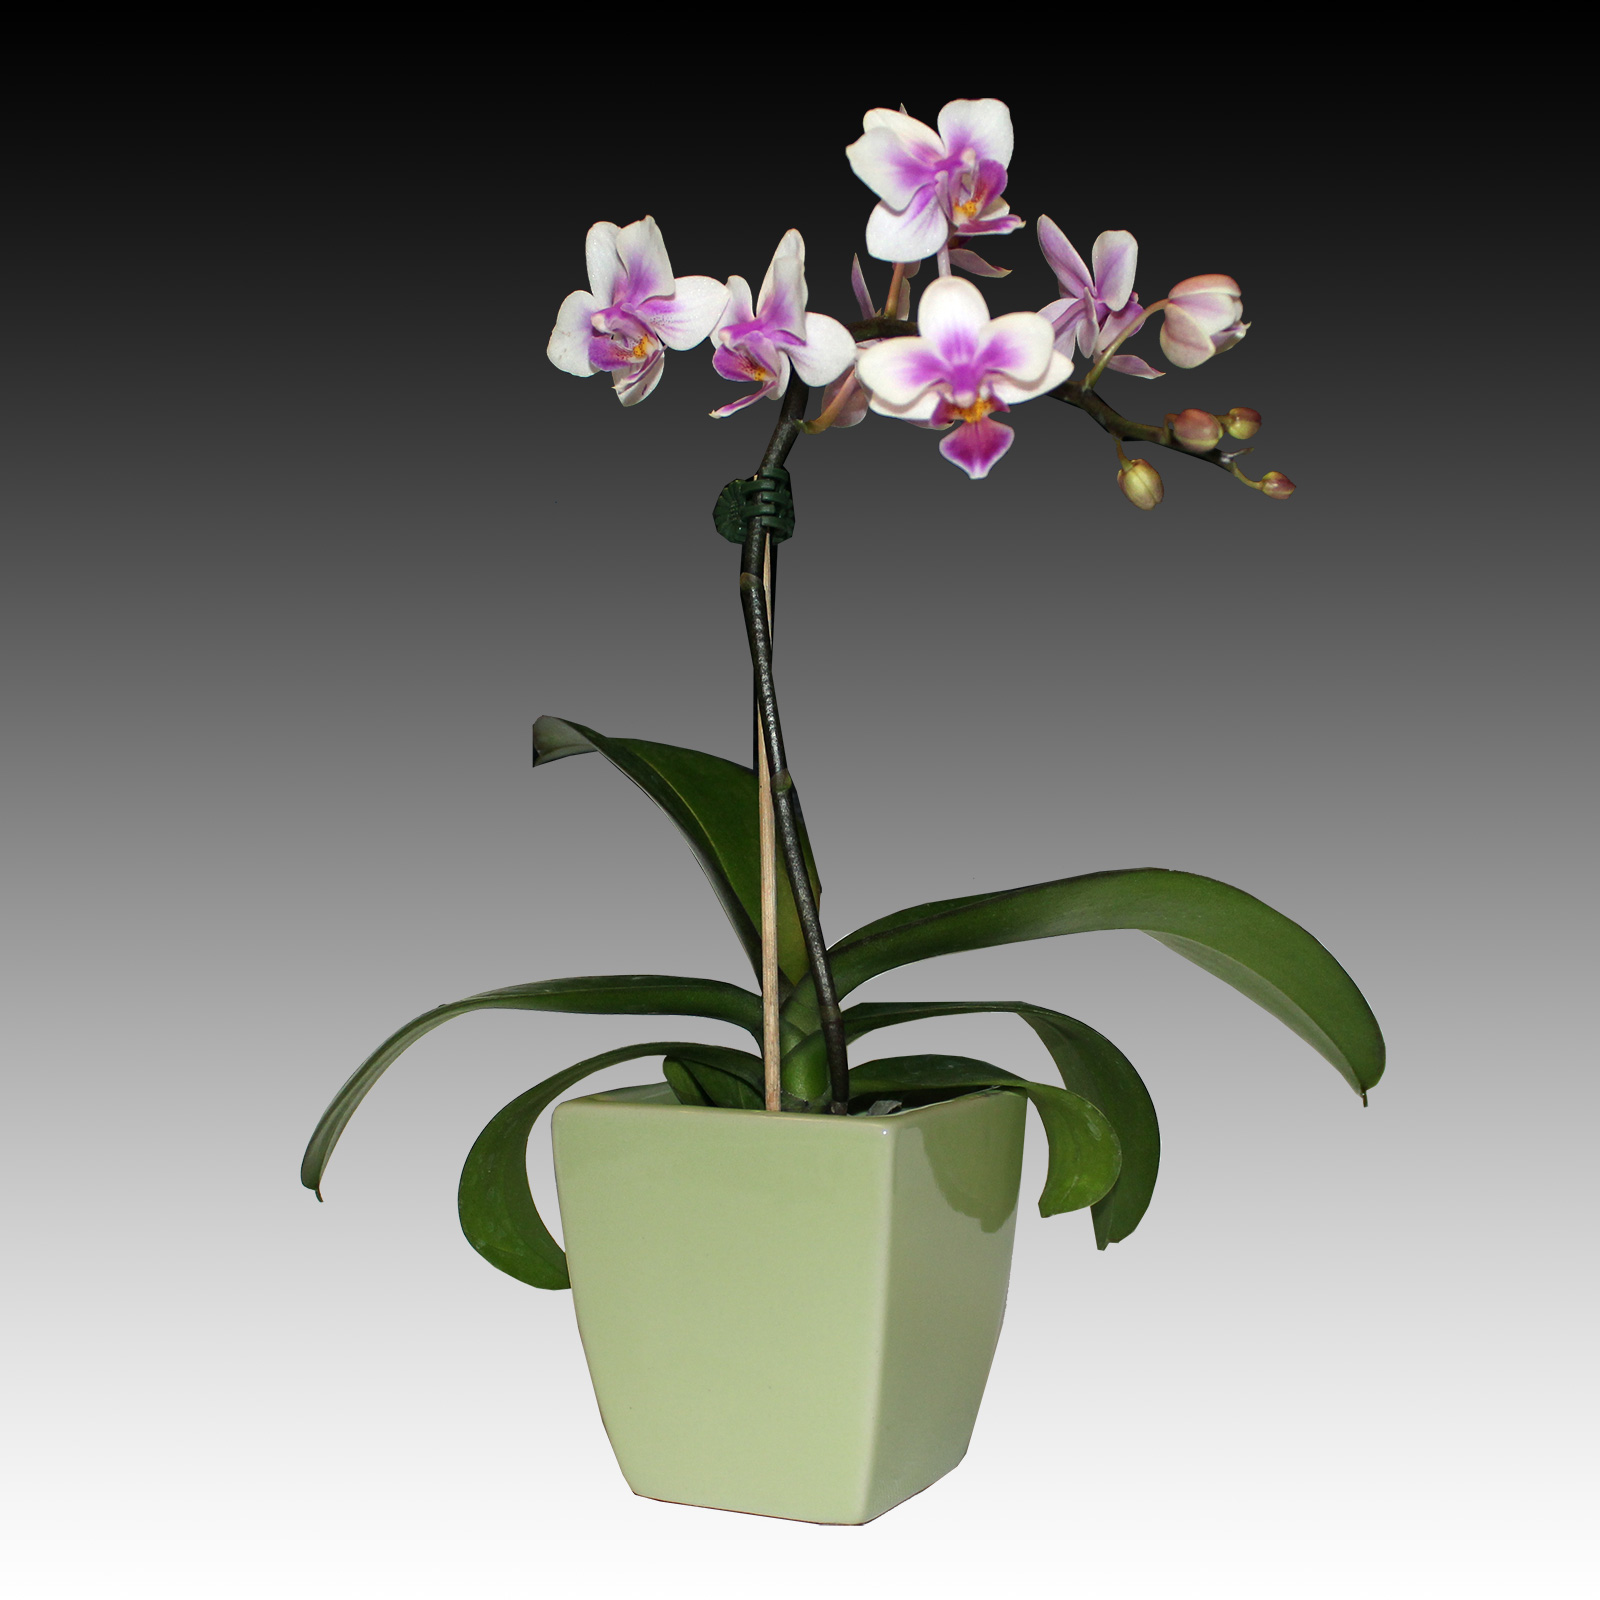 Indoor Zen Small Phalaenopsis White Pink Orchid Flower Green Vase